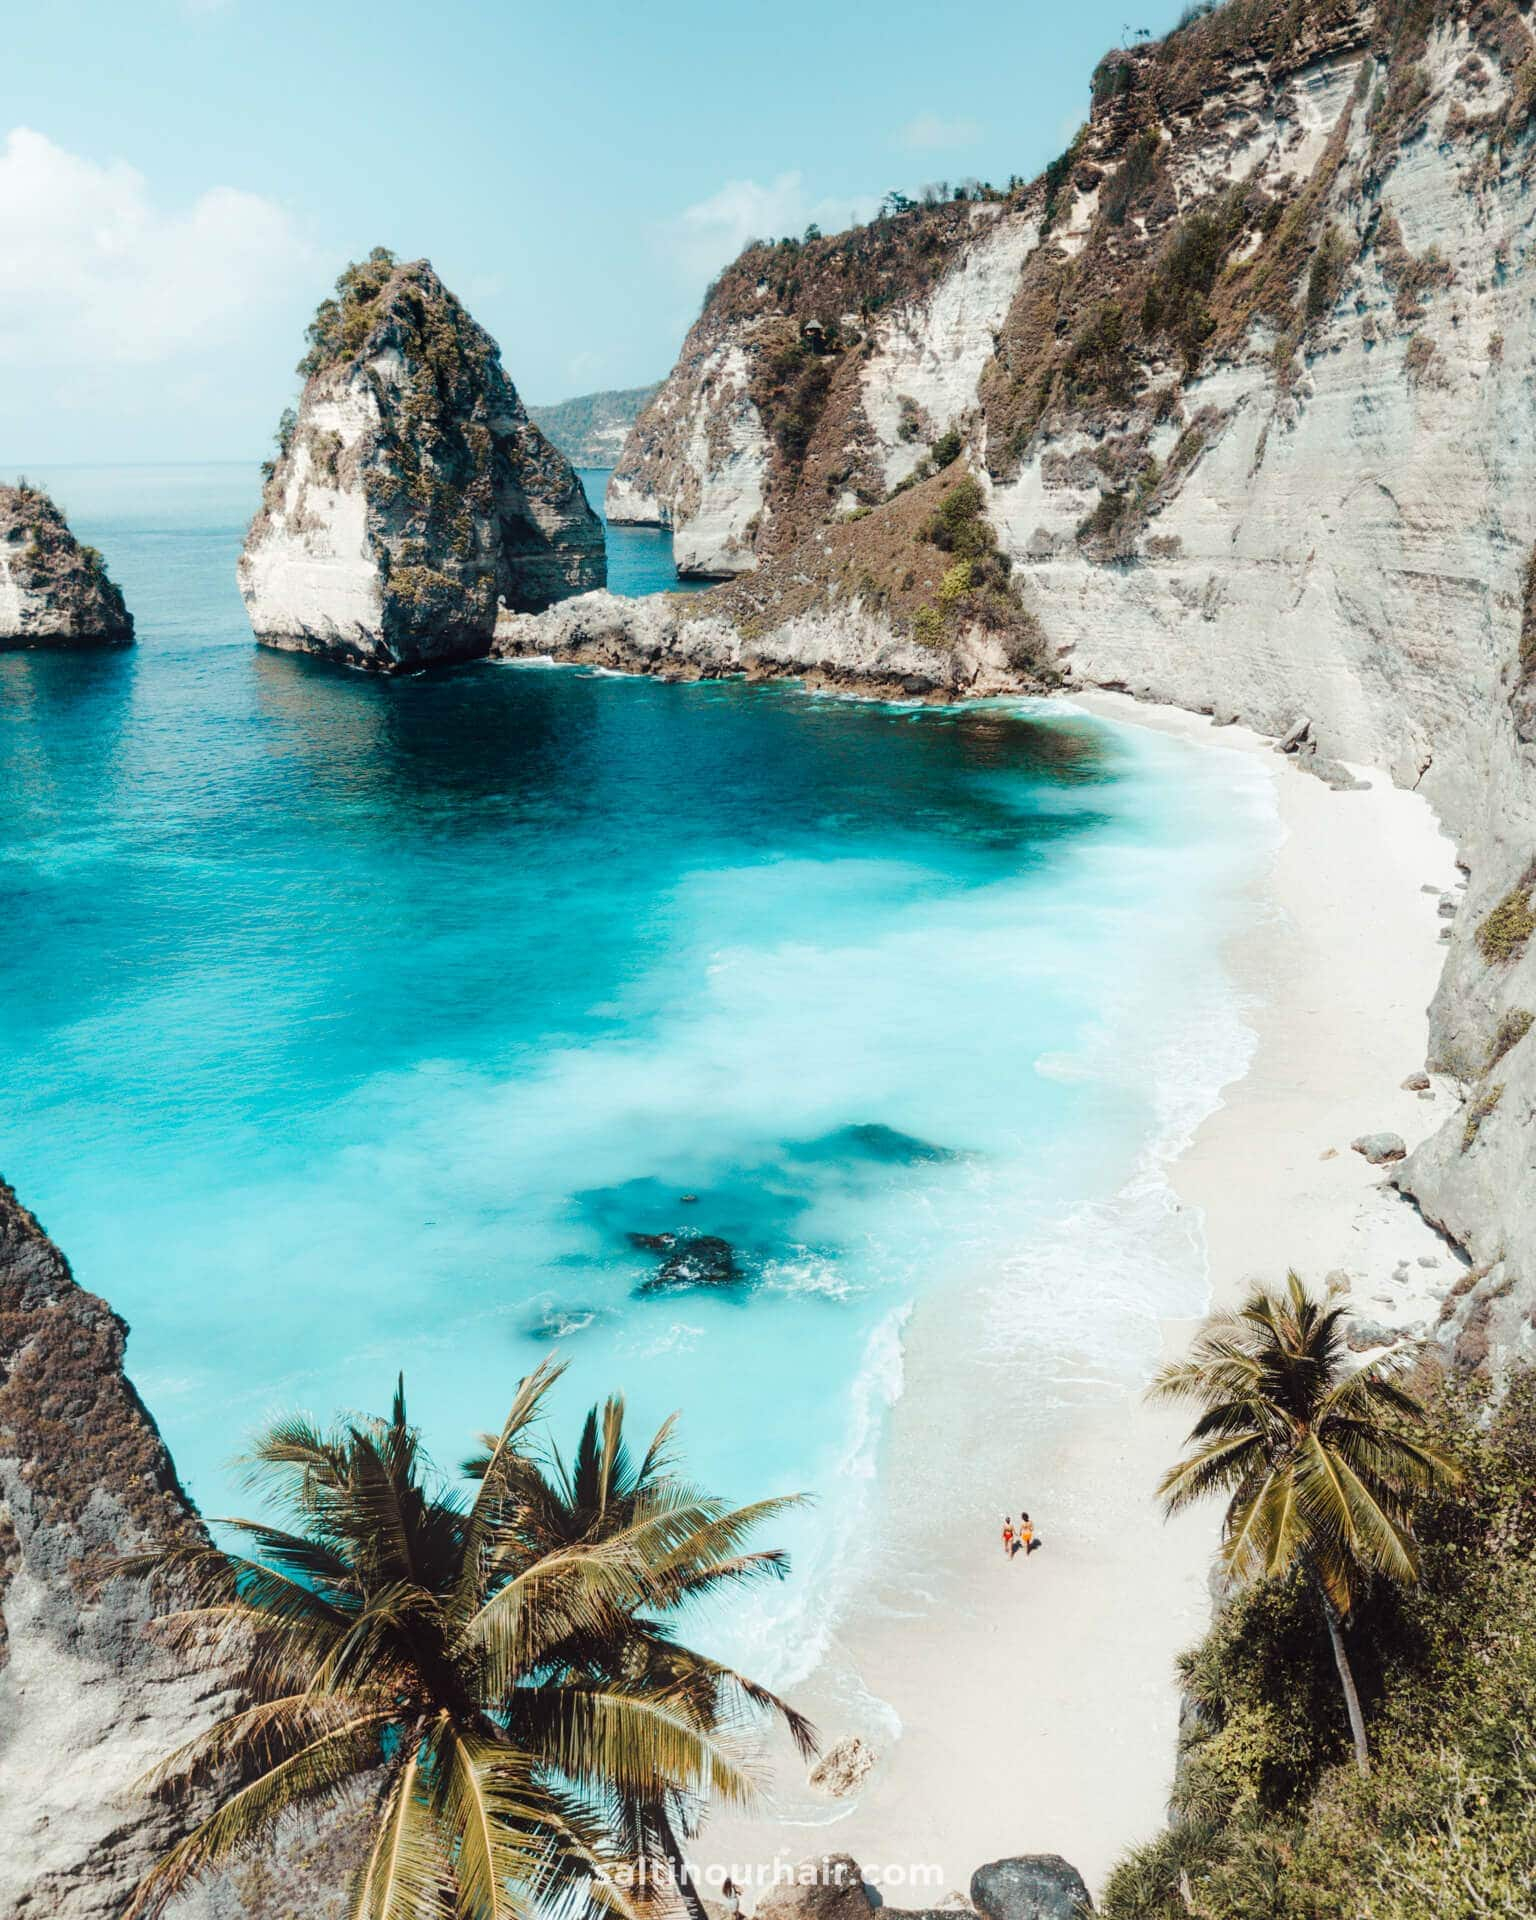 Beach Island: Things You MUST SEE On A Nusa Penida Tour